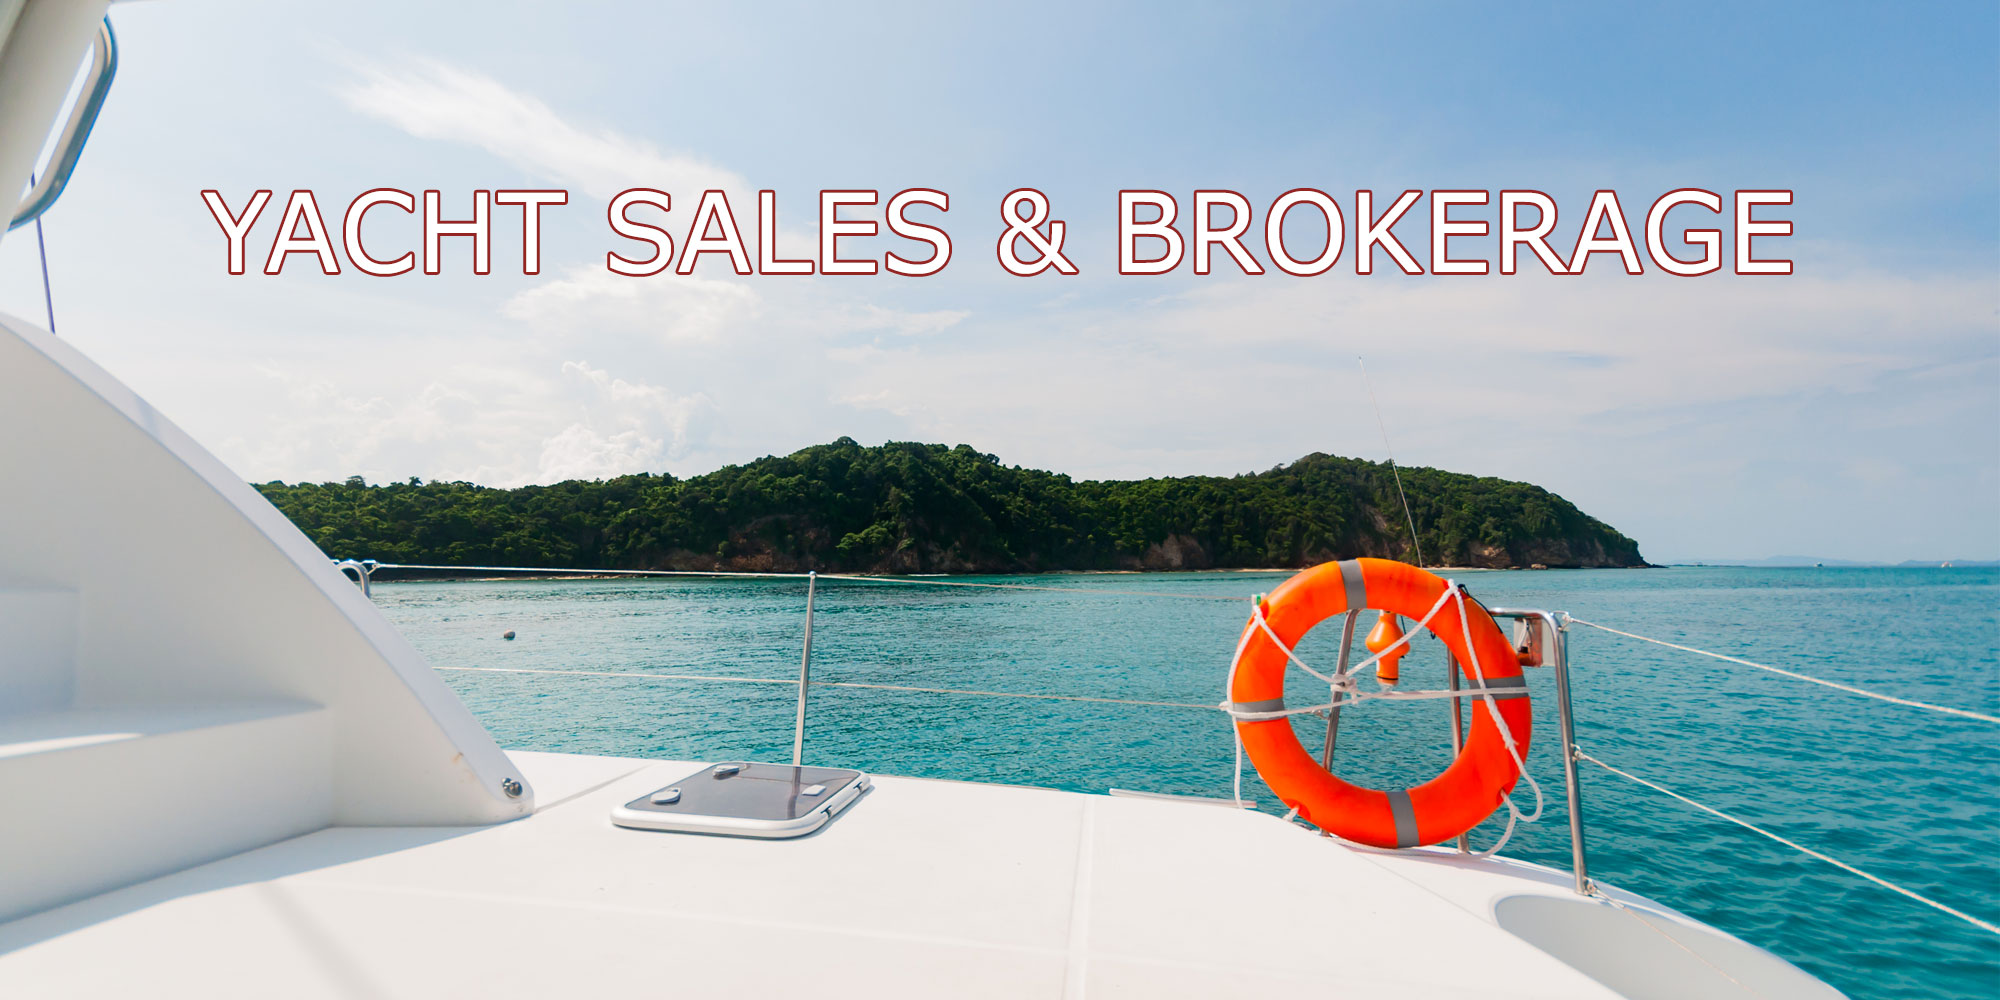 Yacht Sales & Brokerage Services | Yachtmann com